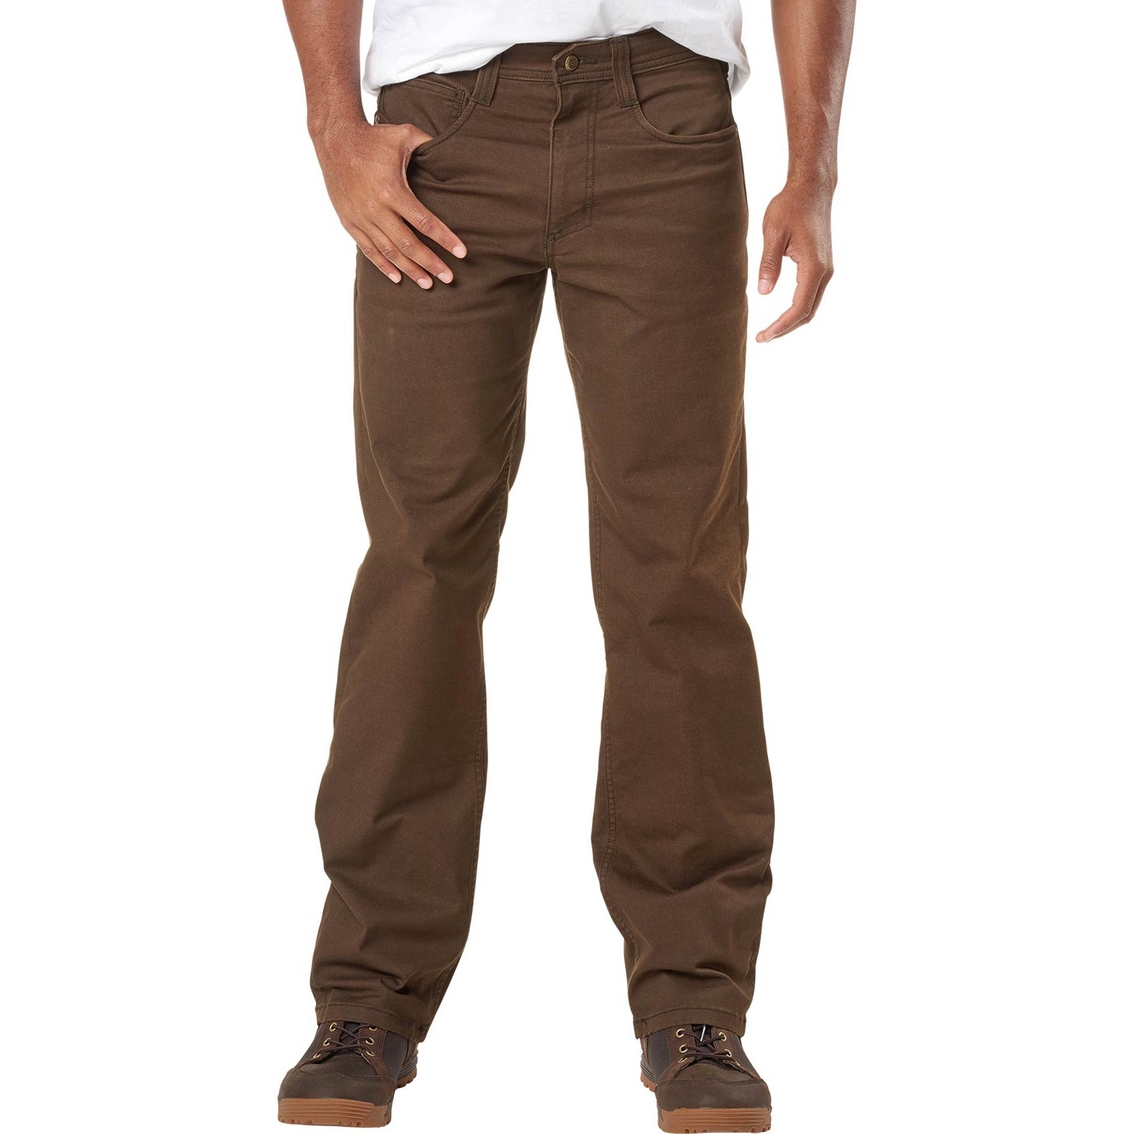 5 11 Defender Flex Straight Pants | Pants | Apparel | Shop